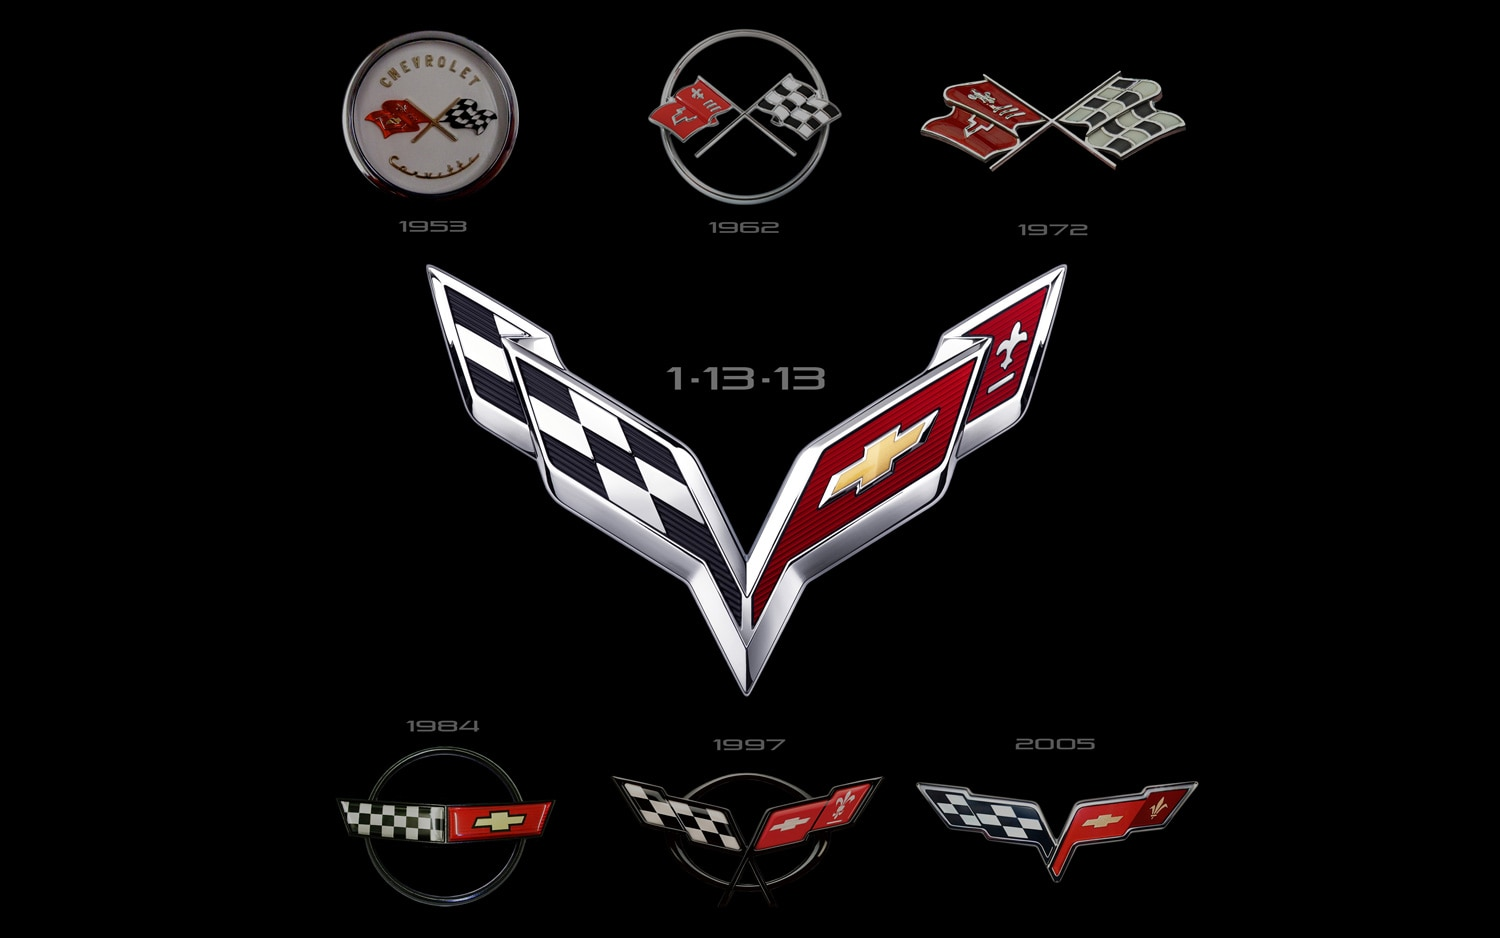 Chevrolet Corvette Crossed Flags Collection21